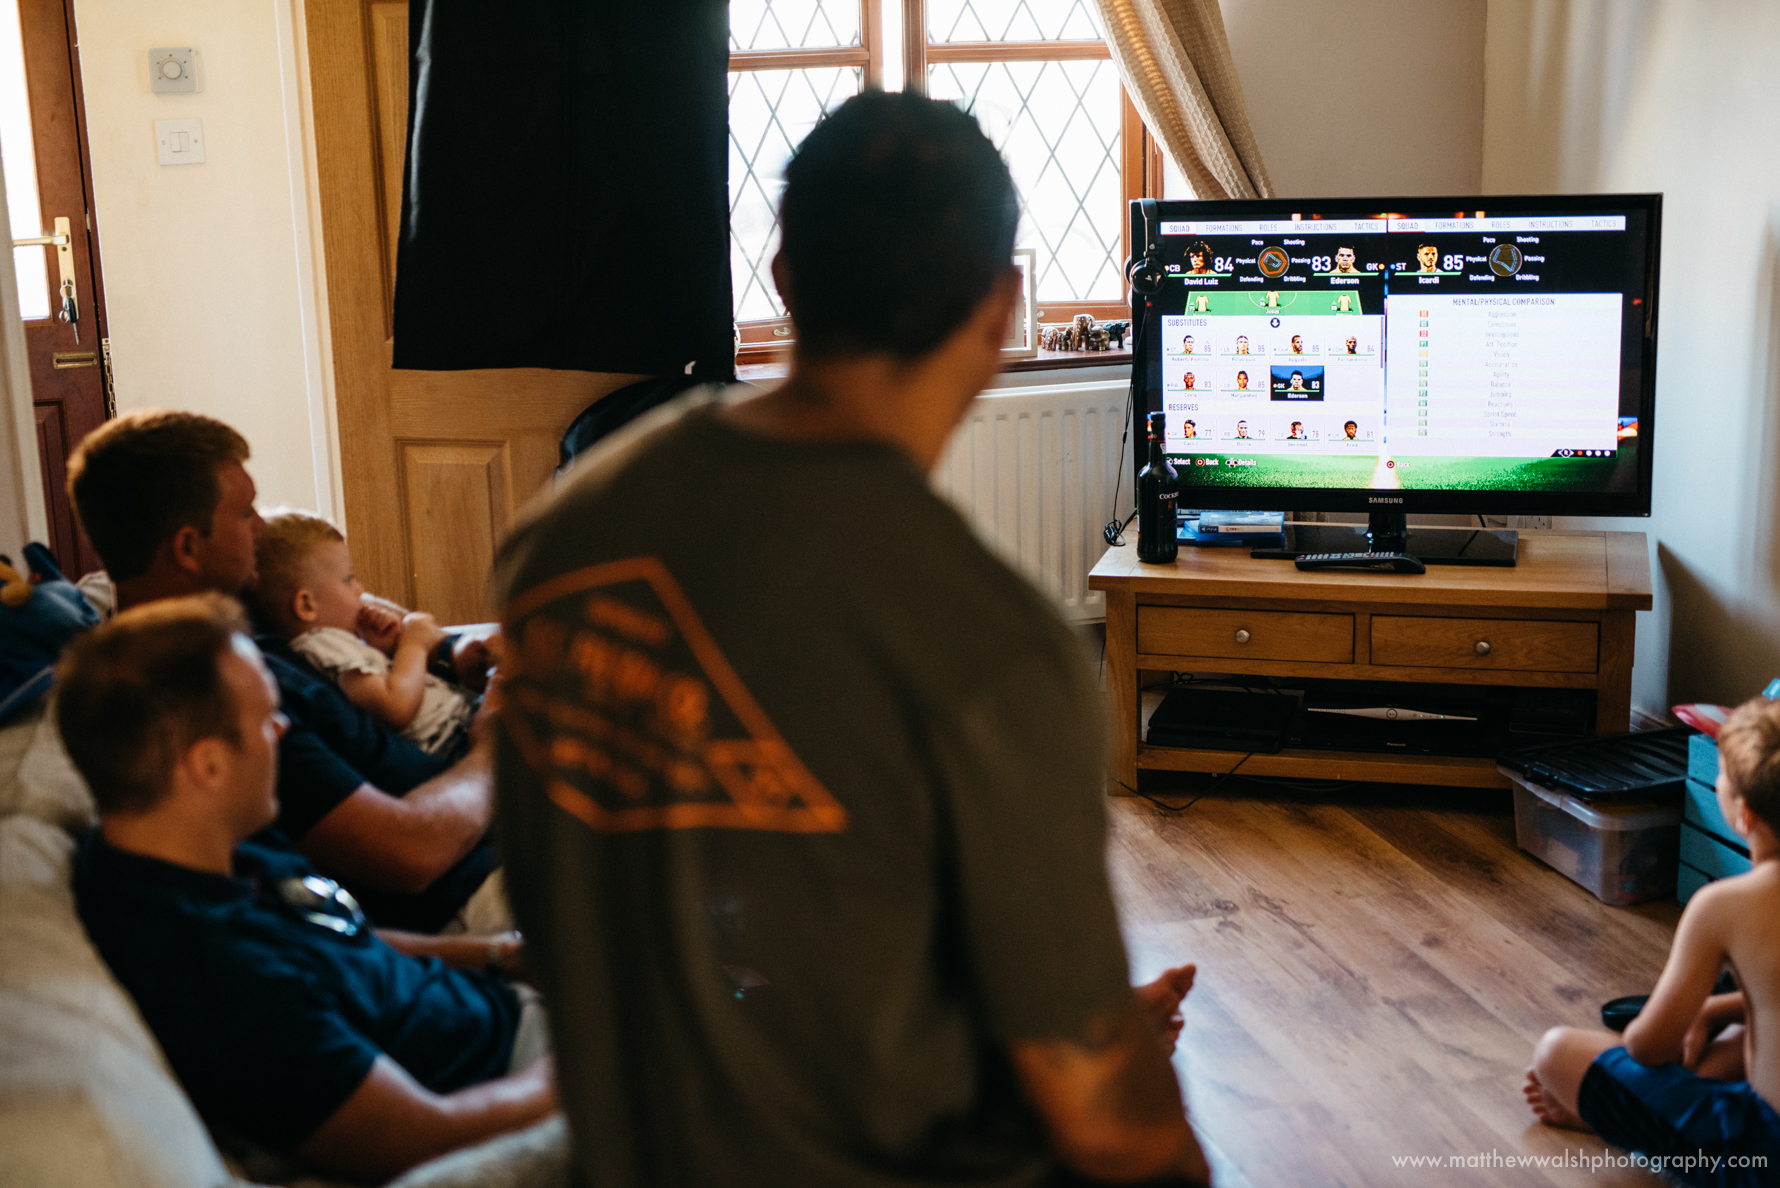 The groomsmen preparing by playing a video game